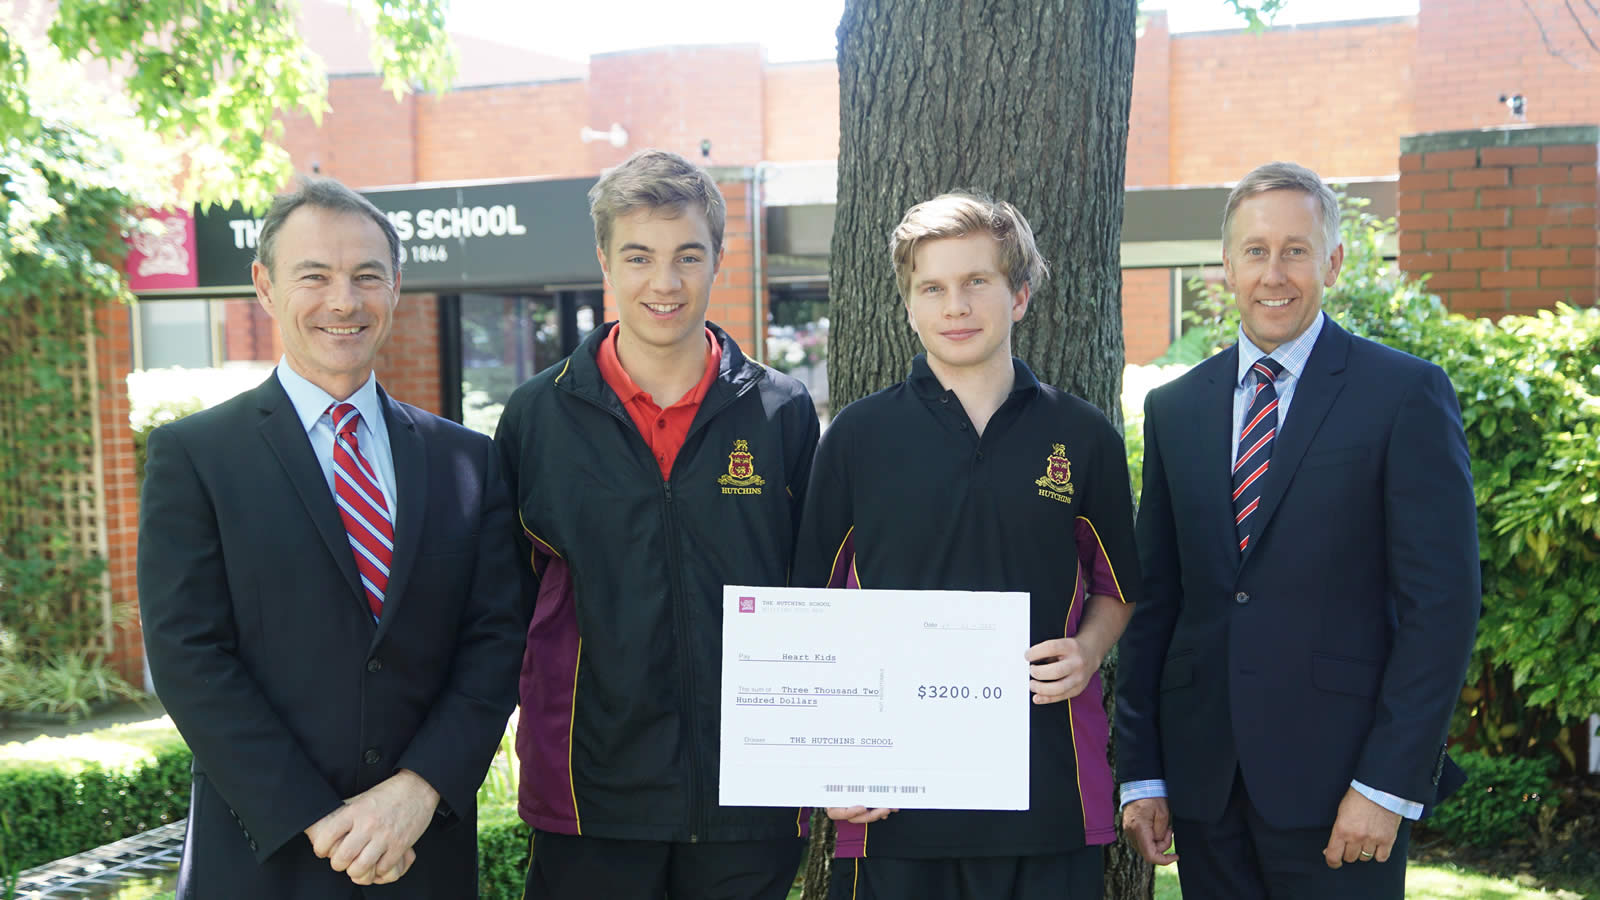 Dr Rob McEwan (Headmaster), Benjamin Farrell, Oliver Parnham, Mr Roger McNamara (Head of Senior School)